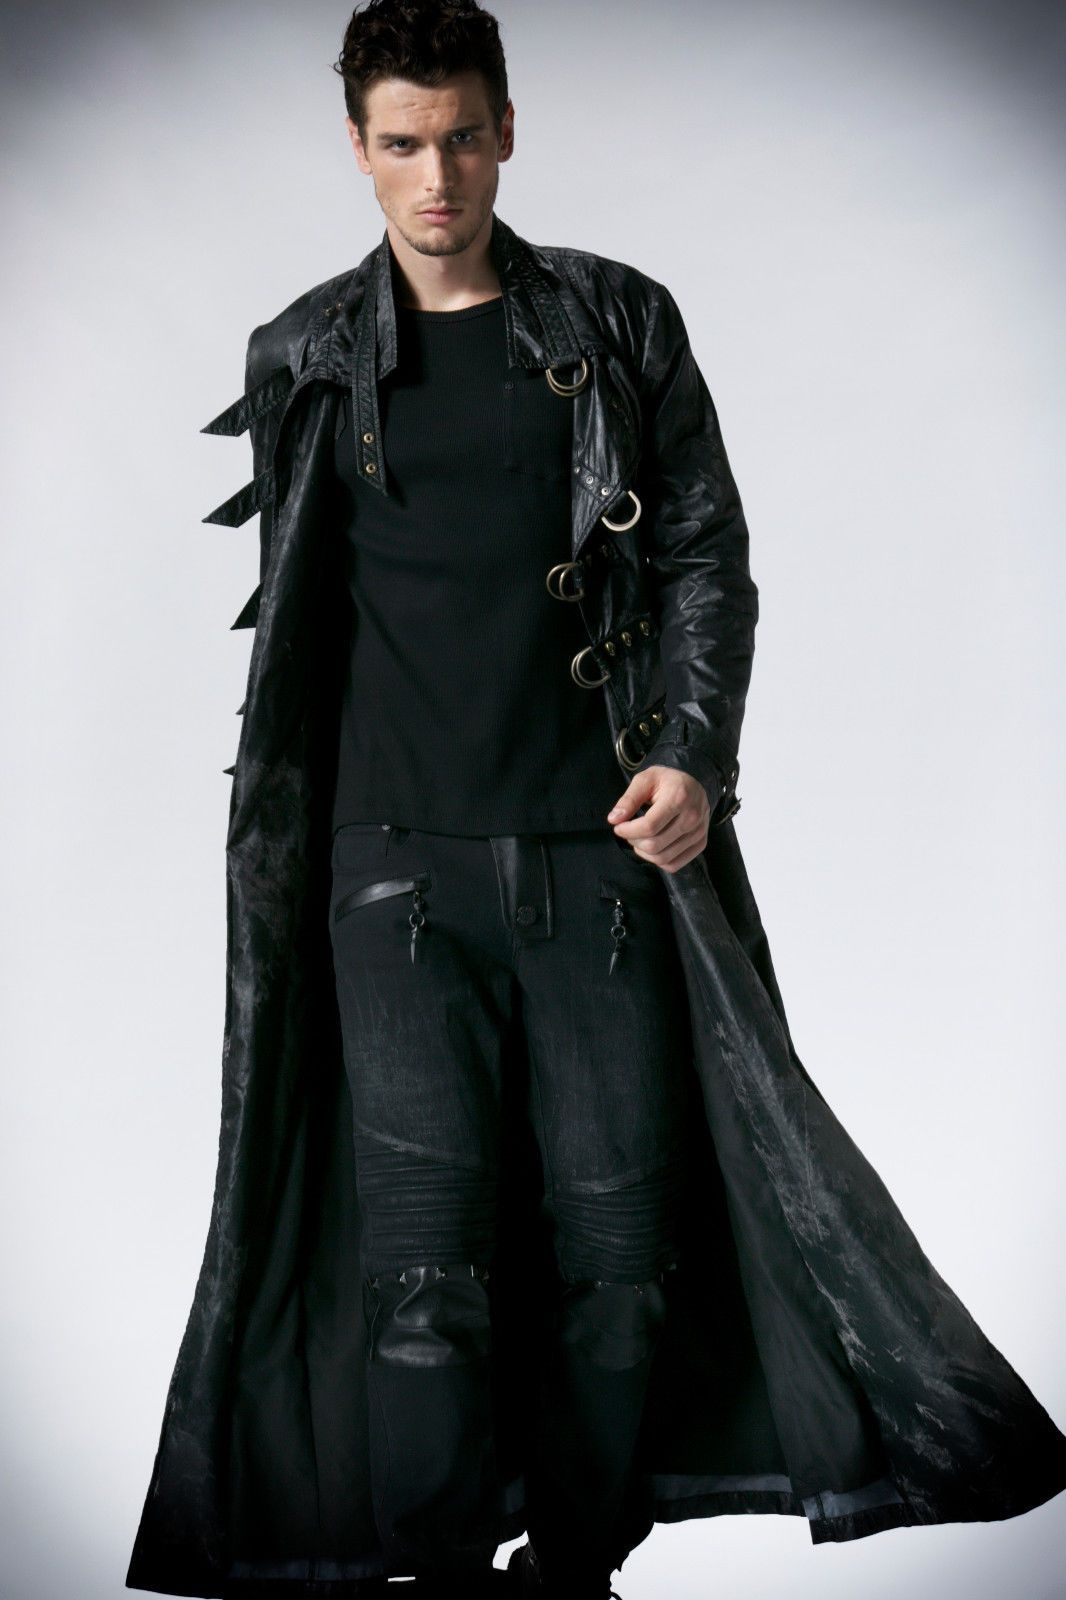 I must admit I love this look especially for an assassin shifter or vampire...or a an ...